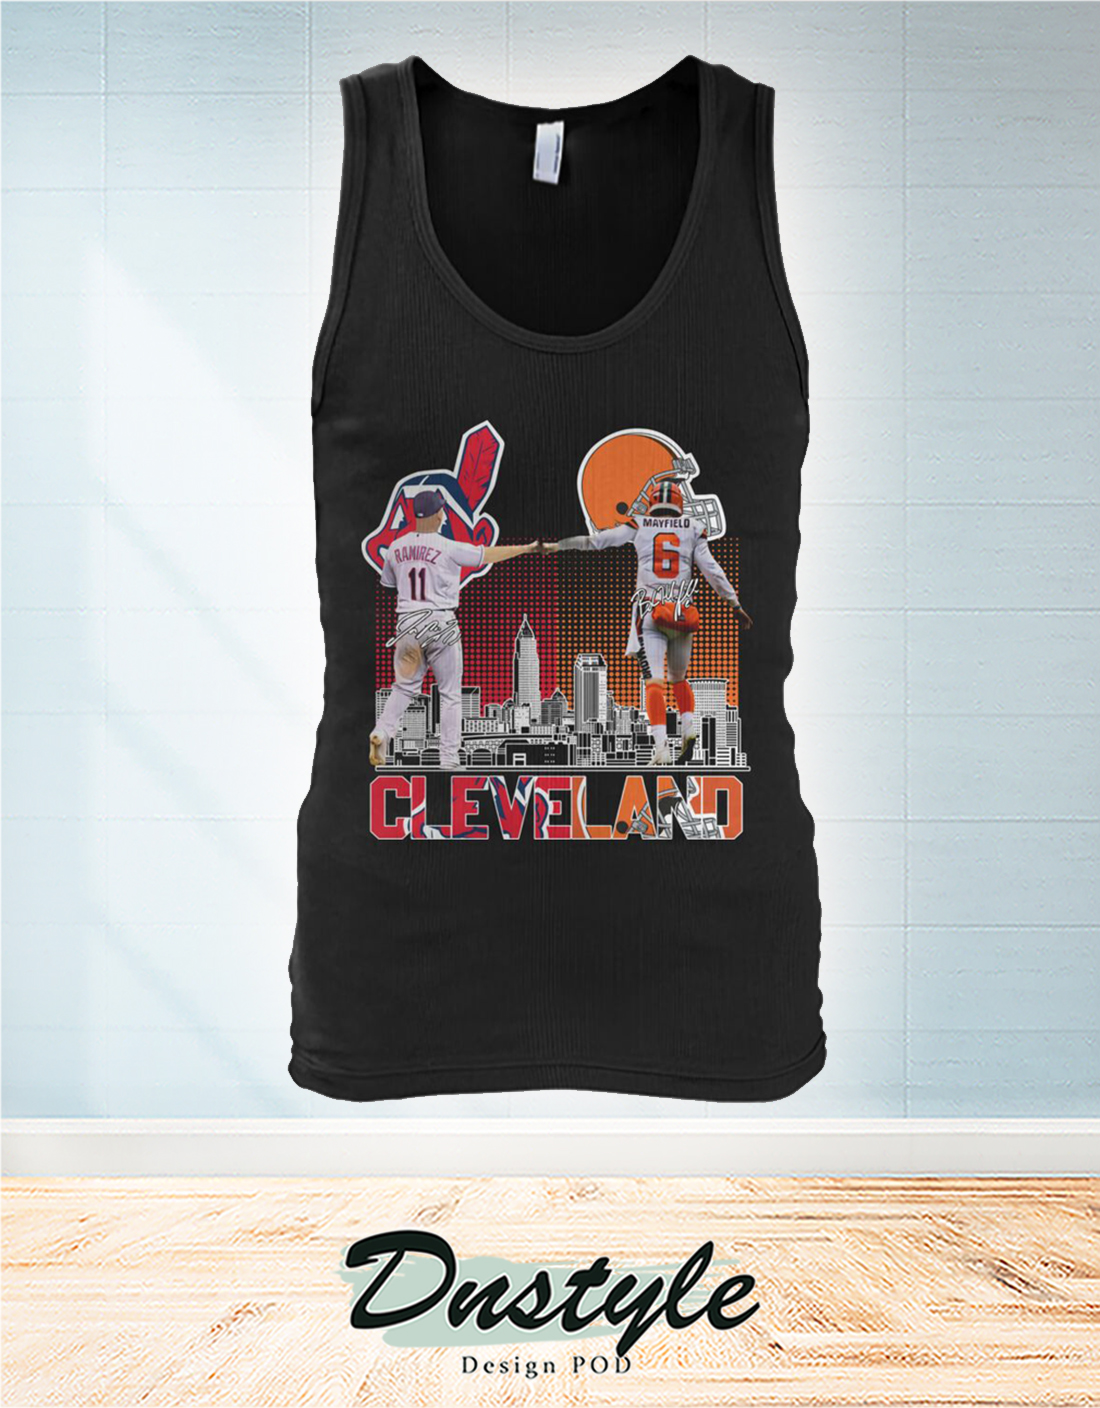 Cleveland Indians and Browns Ramirez and Mayfield tank